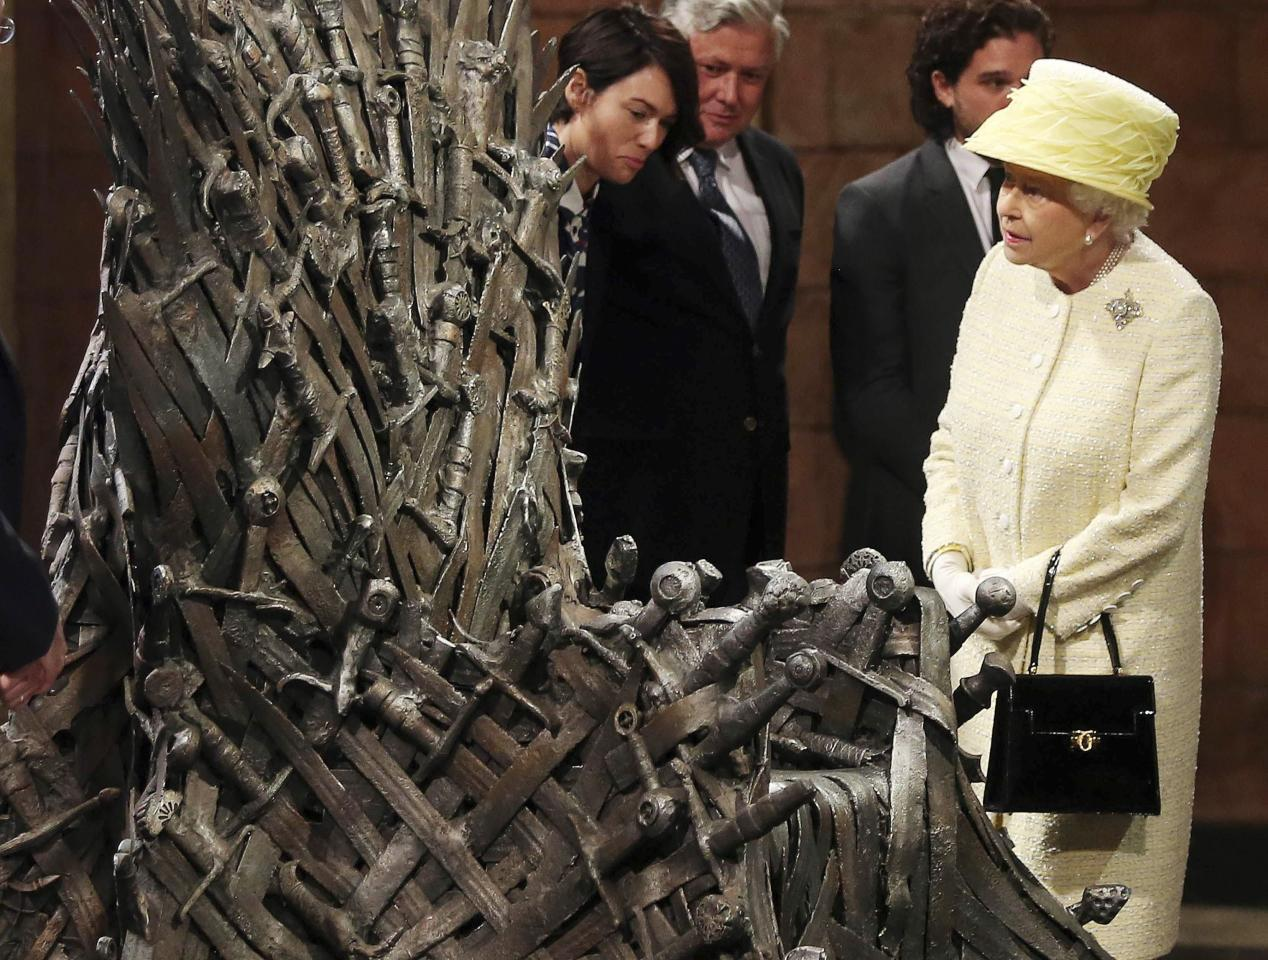 Britain's Queen Elizabeth looks at the Iron Throne next to Game of Thrones cast members Kit Harington (2nd R), Conleth Hill (2nd L) and Lena Headey (L), on the set of the television series in the Titanic Quarter of Belfast, Northern Ireland, June 24, 2014. REUTERS/Jonathan Porter/Pool (NORTHERN IRELAND - Tags: ROYALS ENTERTAINMENT SOCIETY TPX IMAGES OF THE DAY)